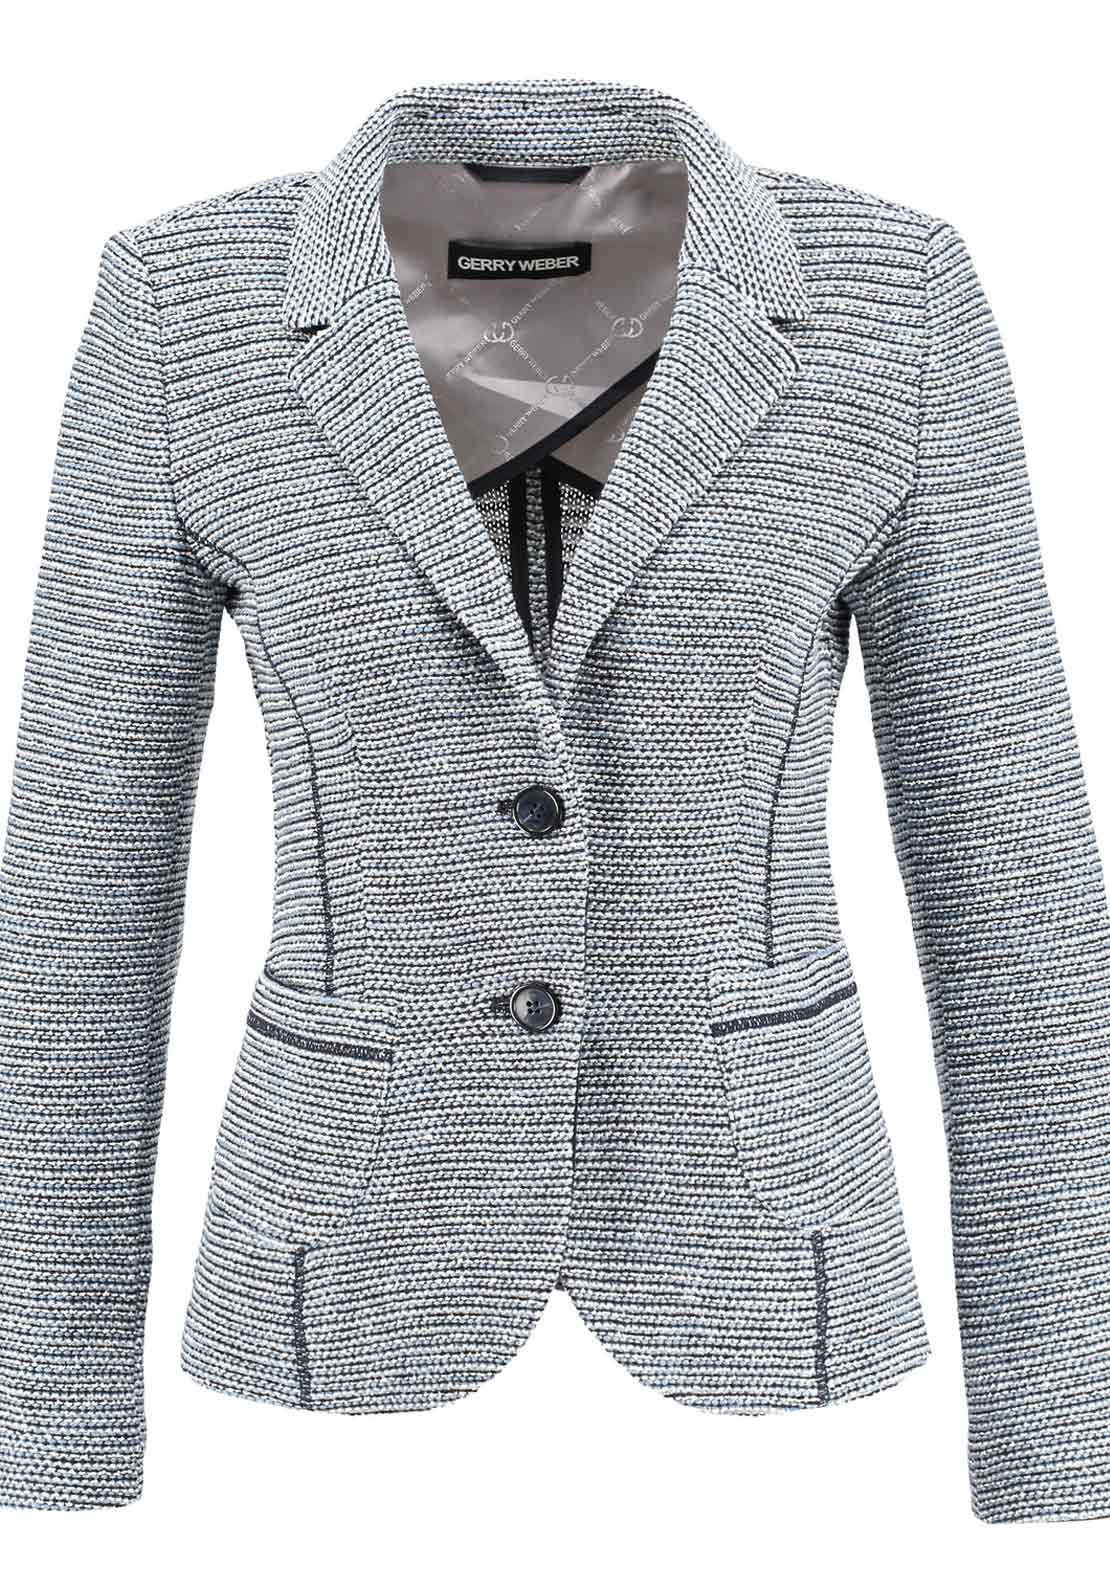 Gerry Weber Boucle Blazer Jacket, Blue